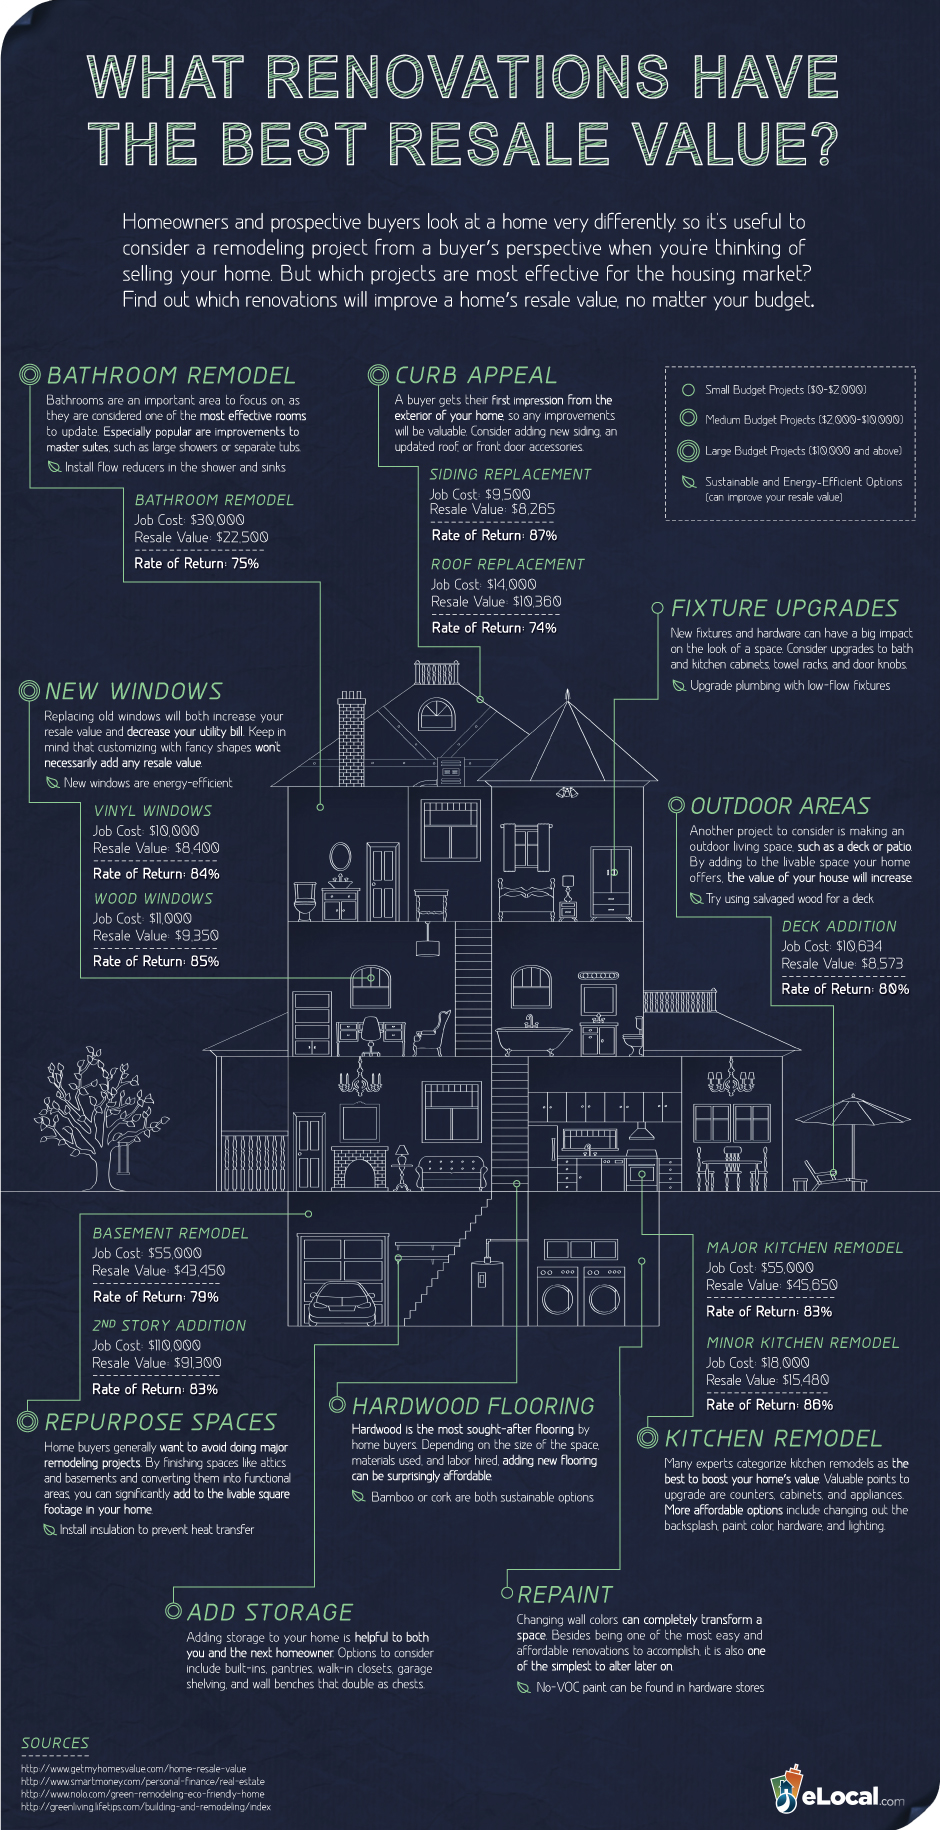 What renovations have the best resale value